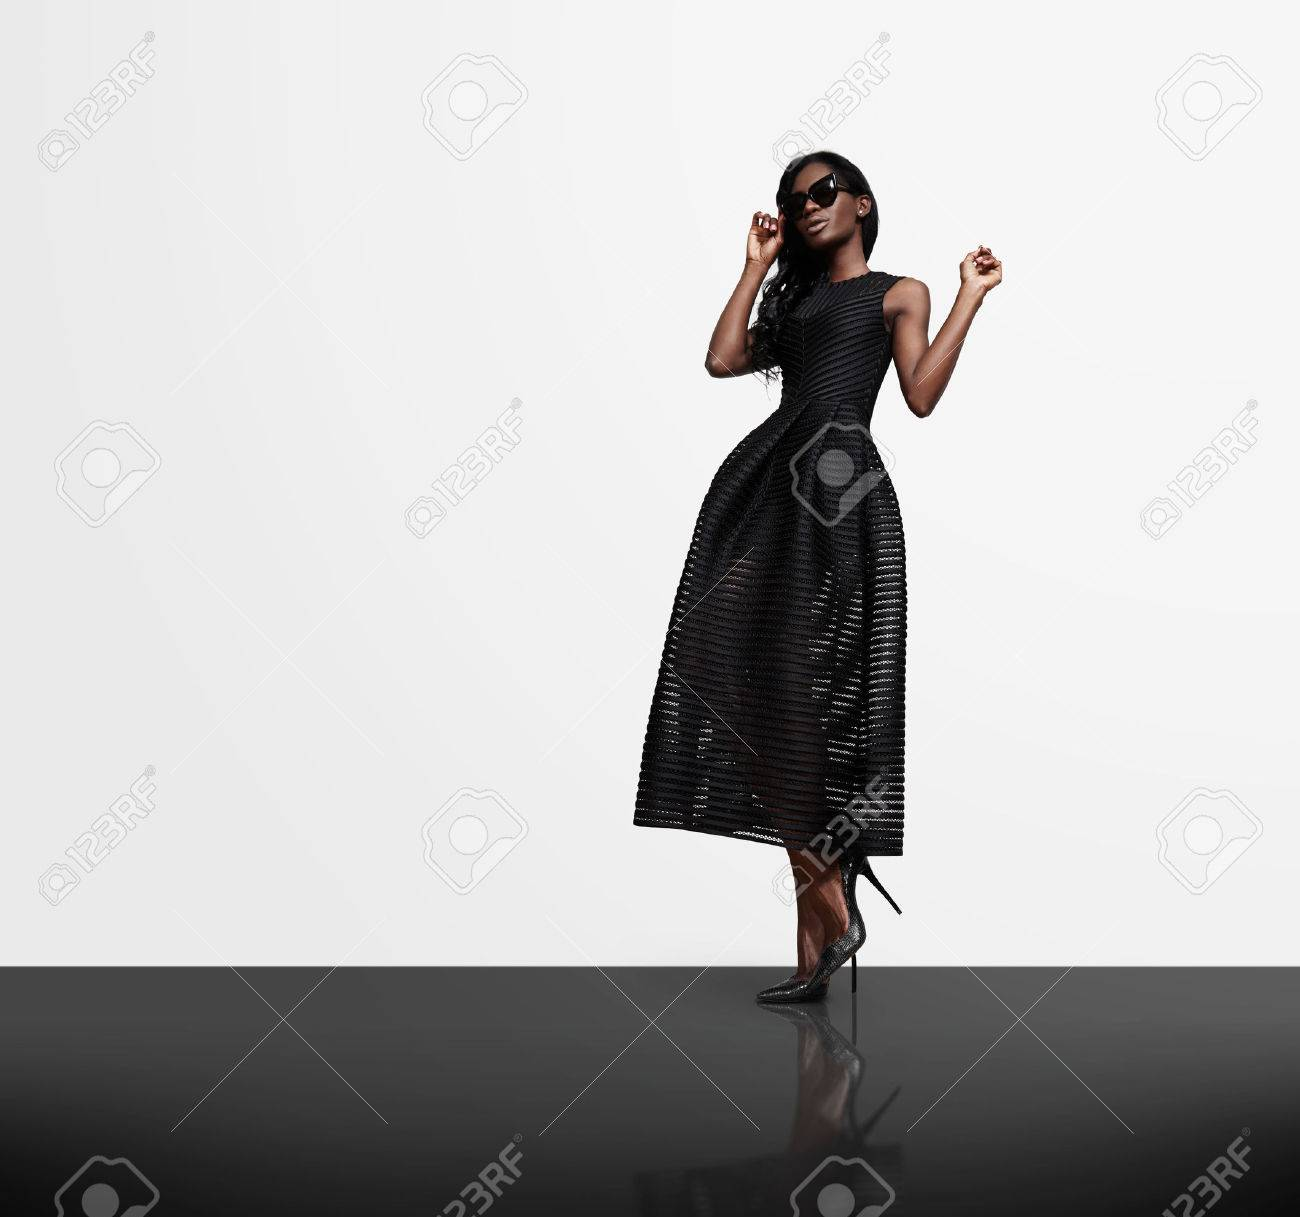 woman wearing black dress on a white wall background and black cristal flor - 42417396